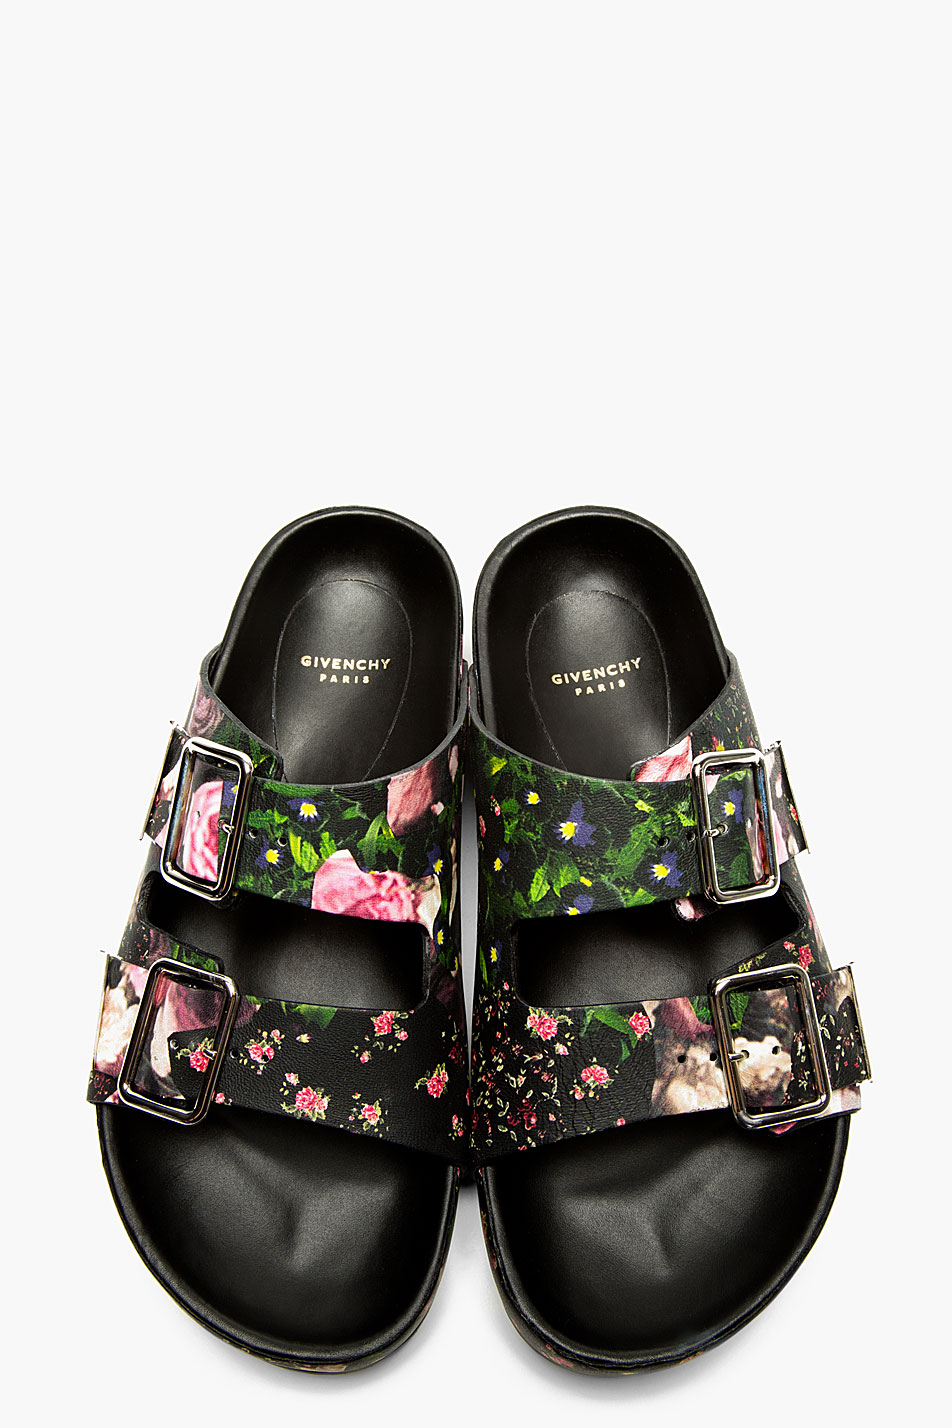 Lyst - Givenchy Black Leather Floral Print Casual Sandals ...